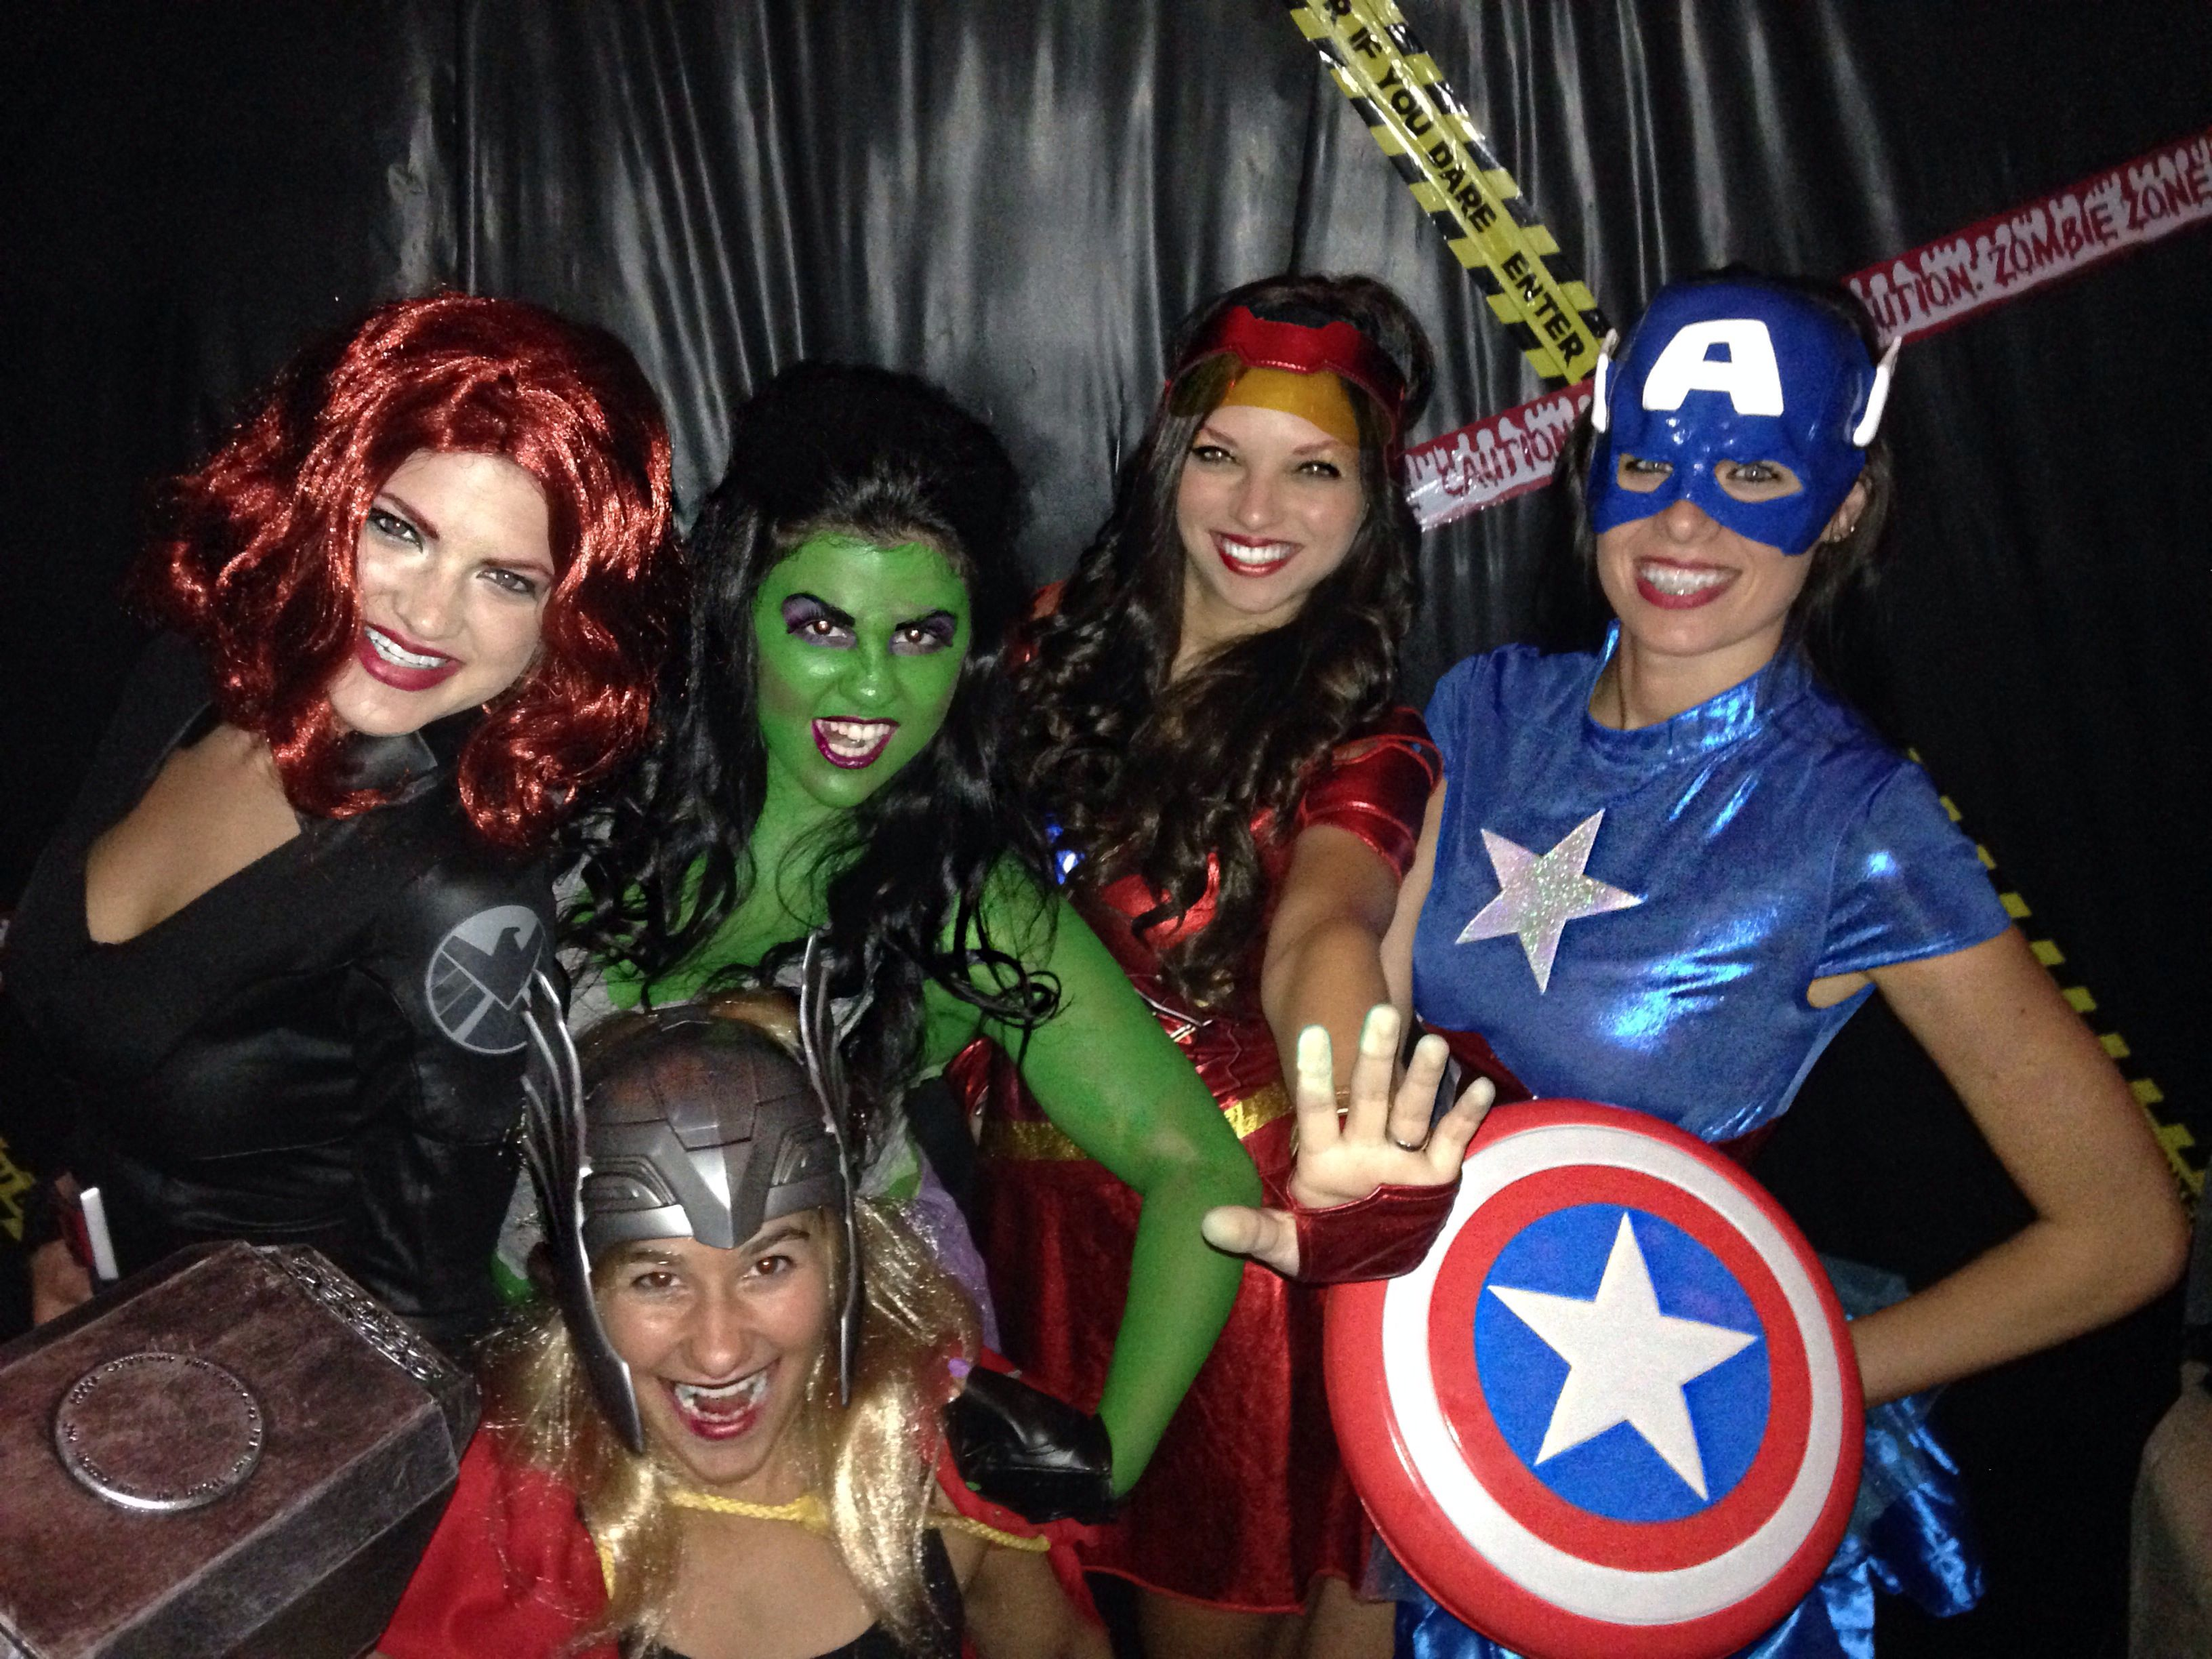 Avengers Group Costume Girl Avengers Bestfriends Team Halloween Costumes Diy Avengers Costume Disney Group Costumes